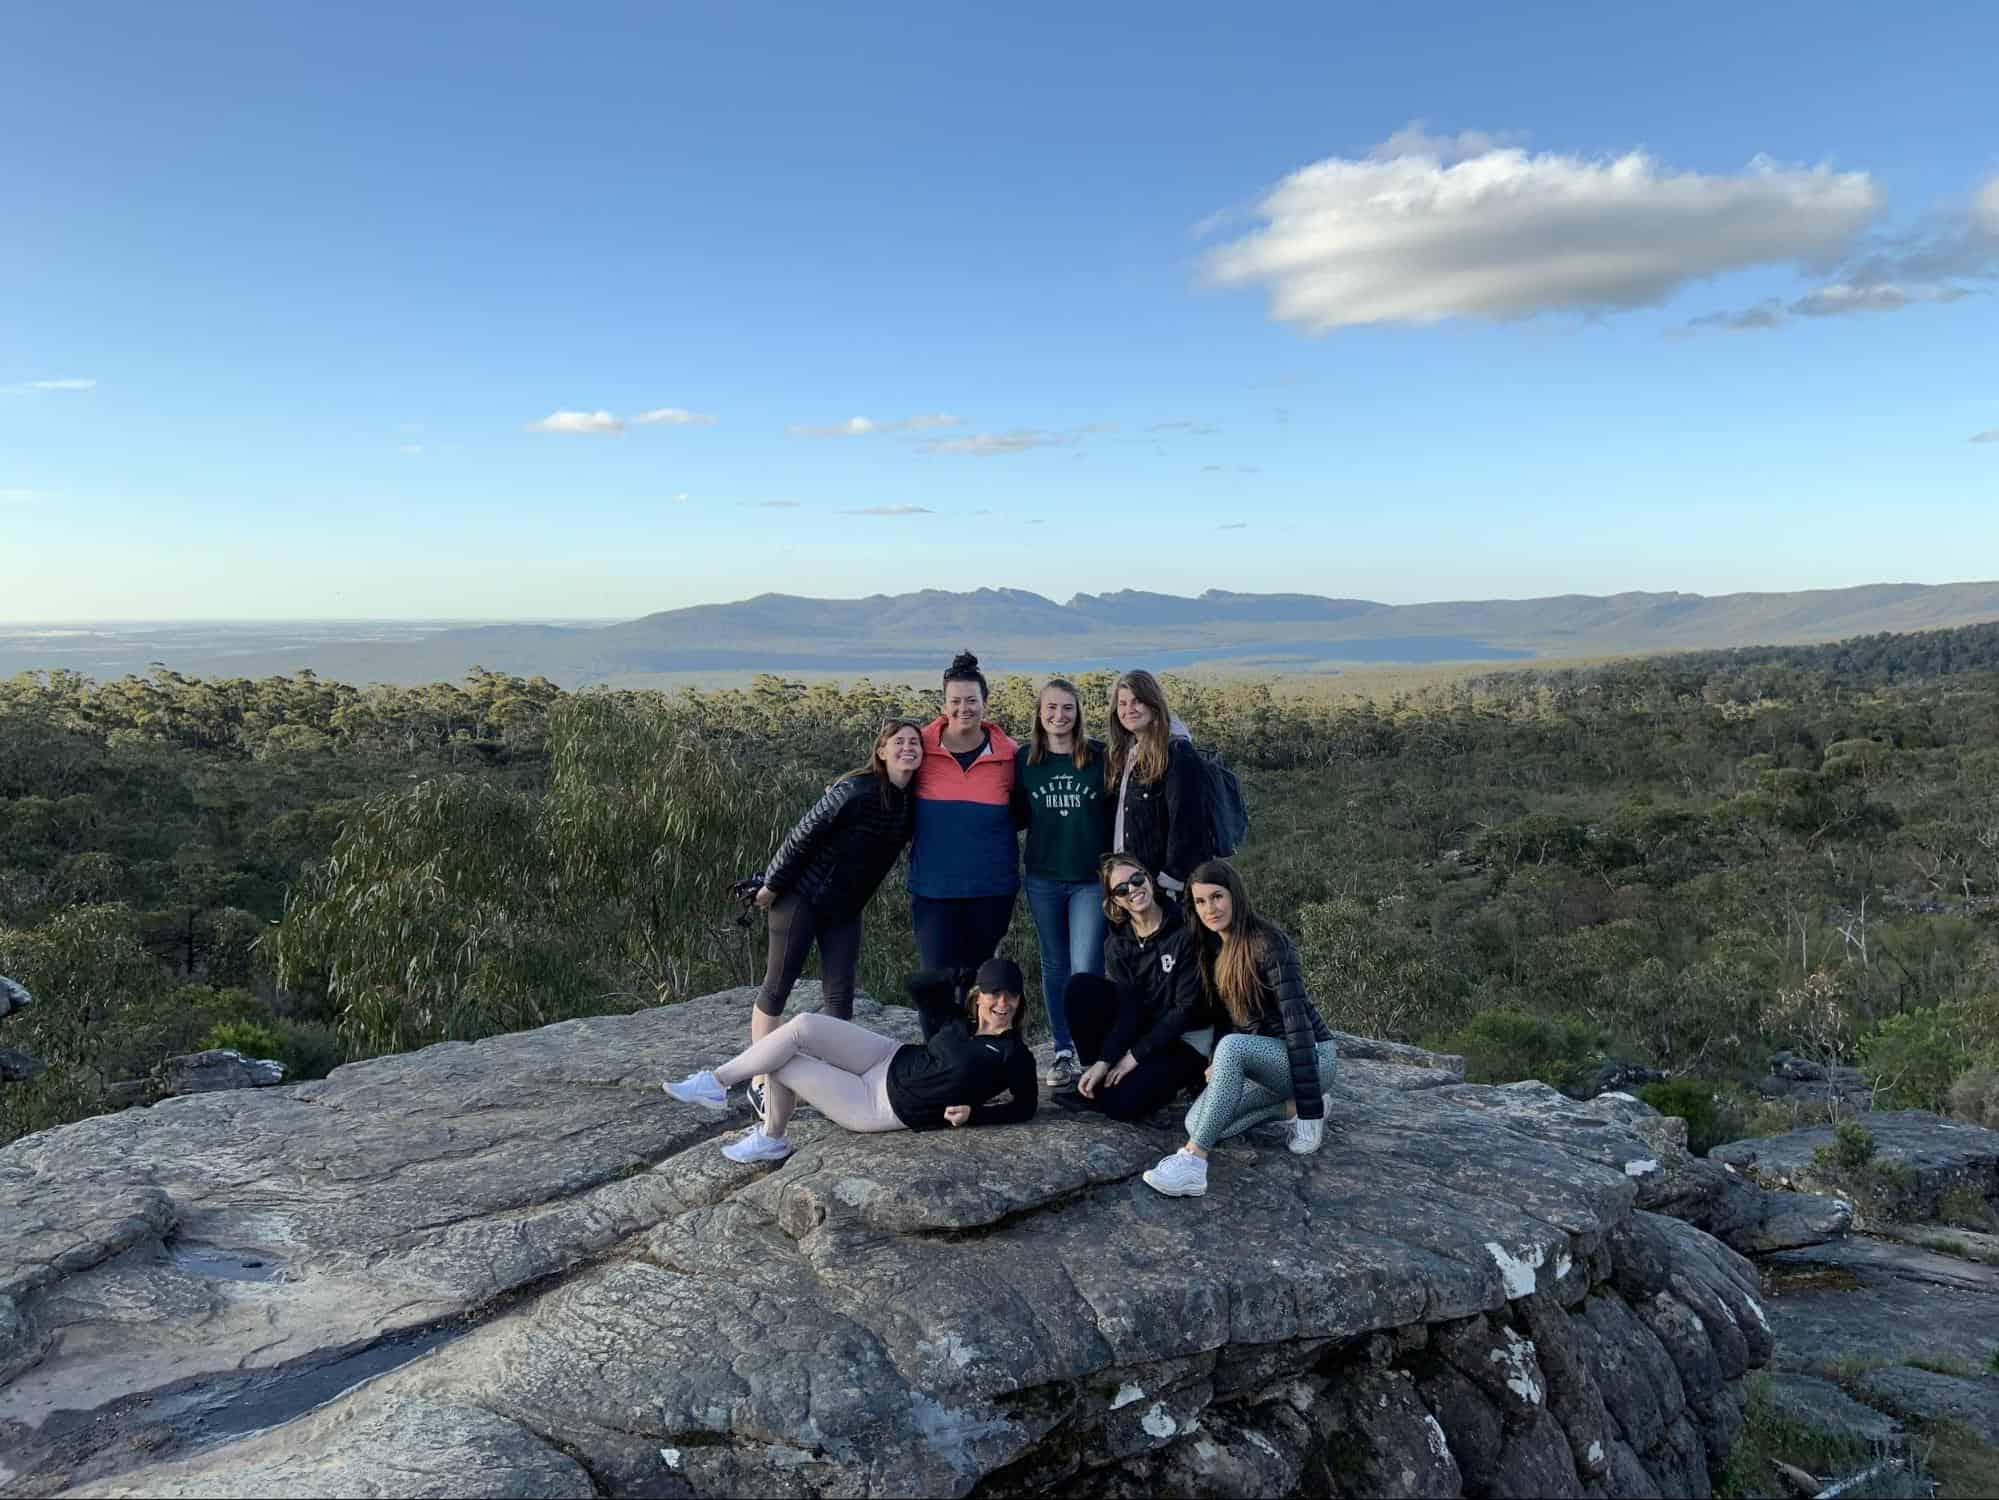 A group of travelling girls pose on a mountain cliff